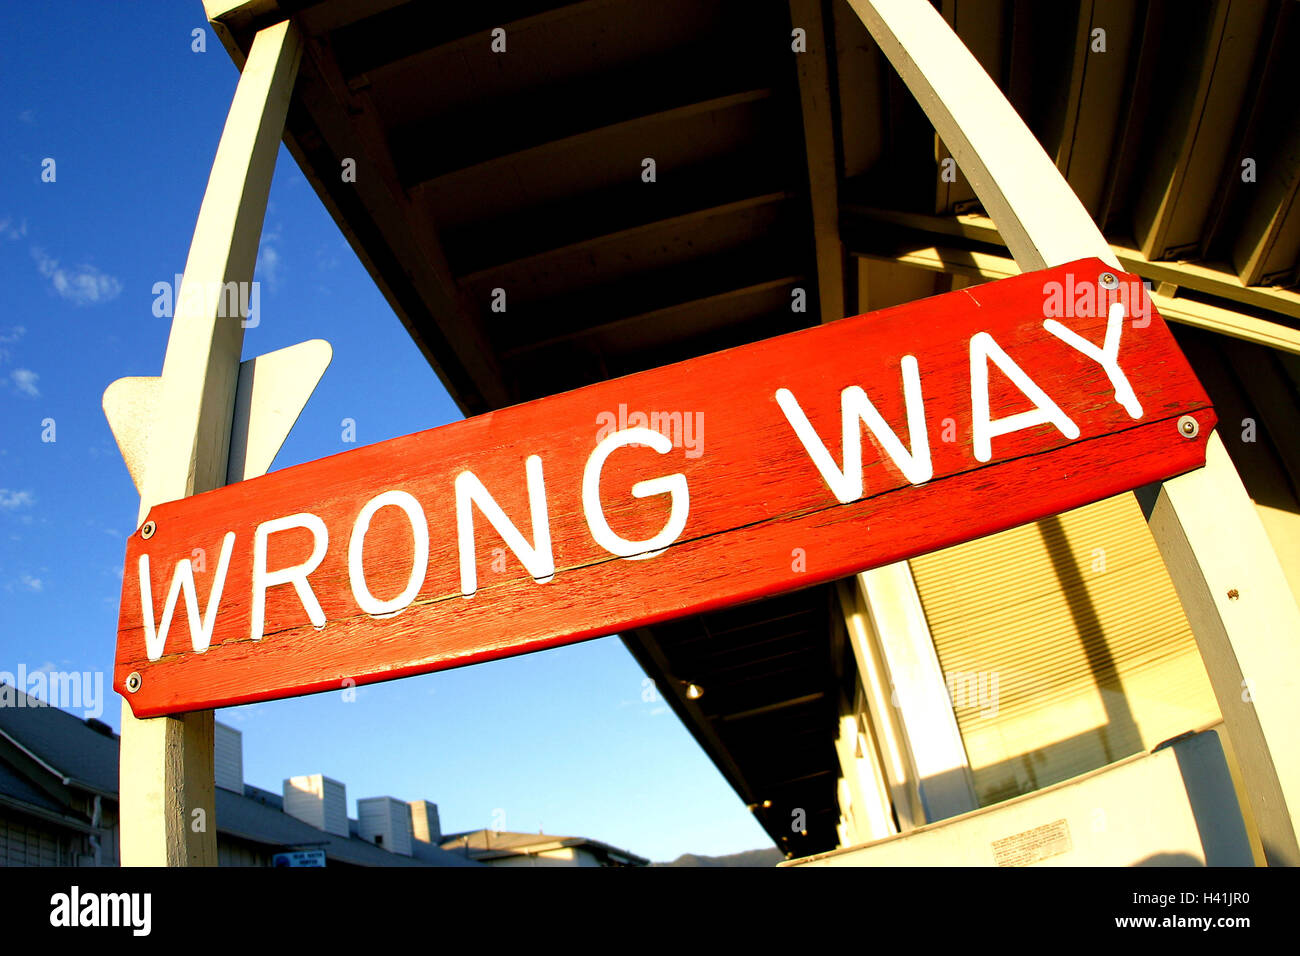 Building, detail, sign, 'Wrong Way' road sign, sign, red, label, 'wrong way', direction the traffic, - Stock Image